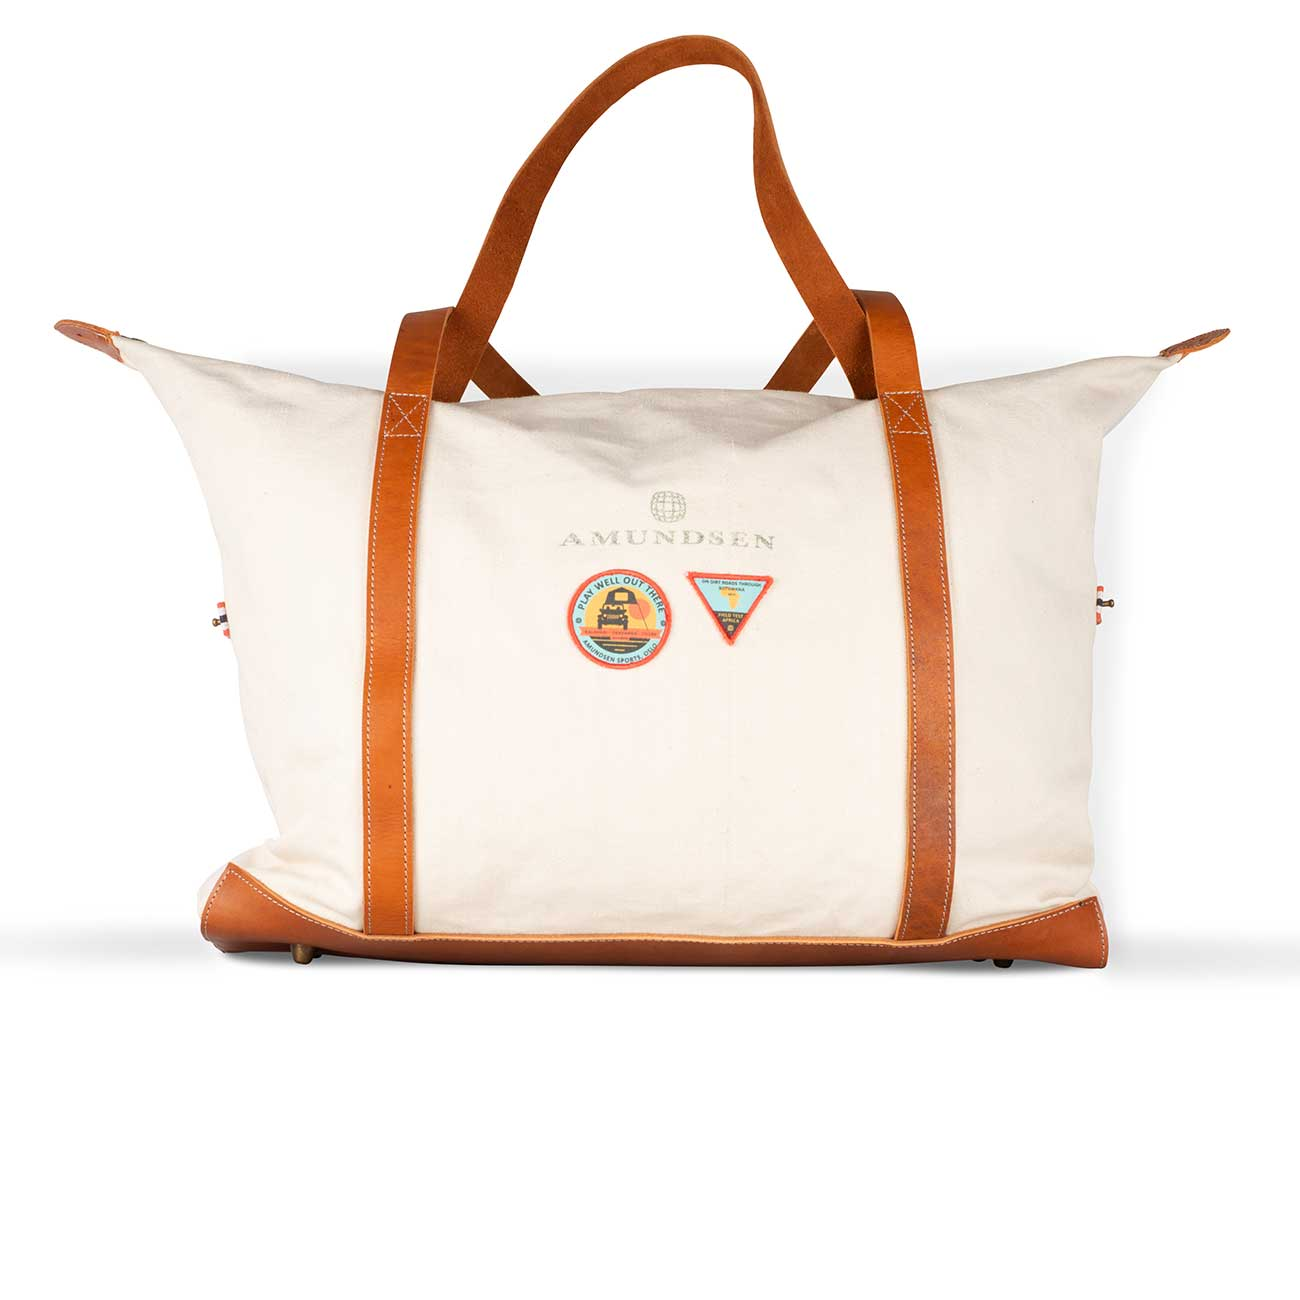 Amundsen KALAHARI WEEKEND TOTE BAG